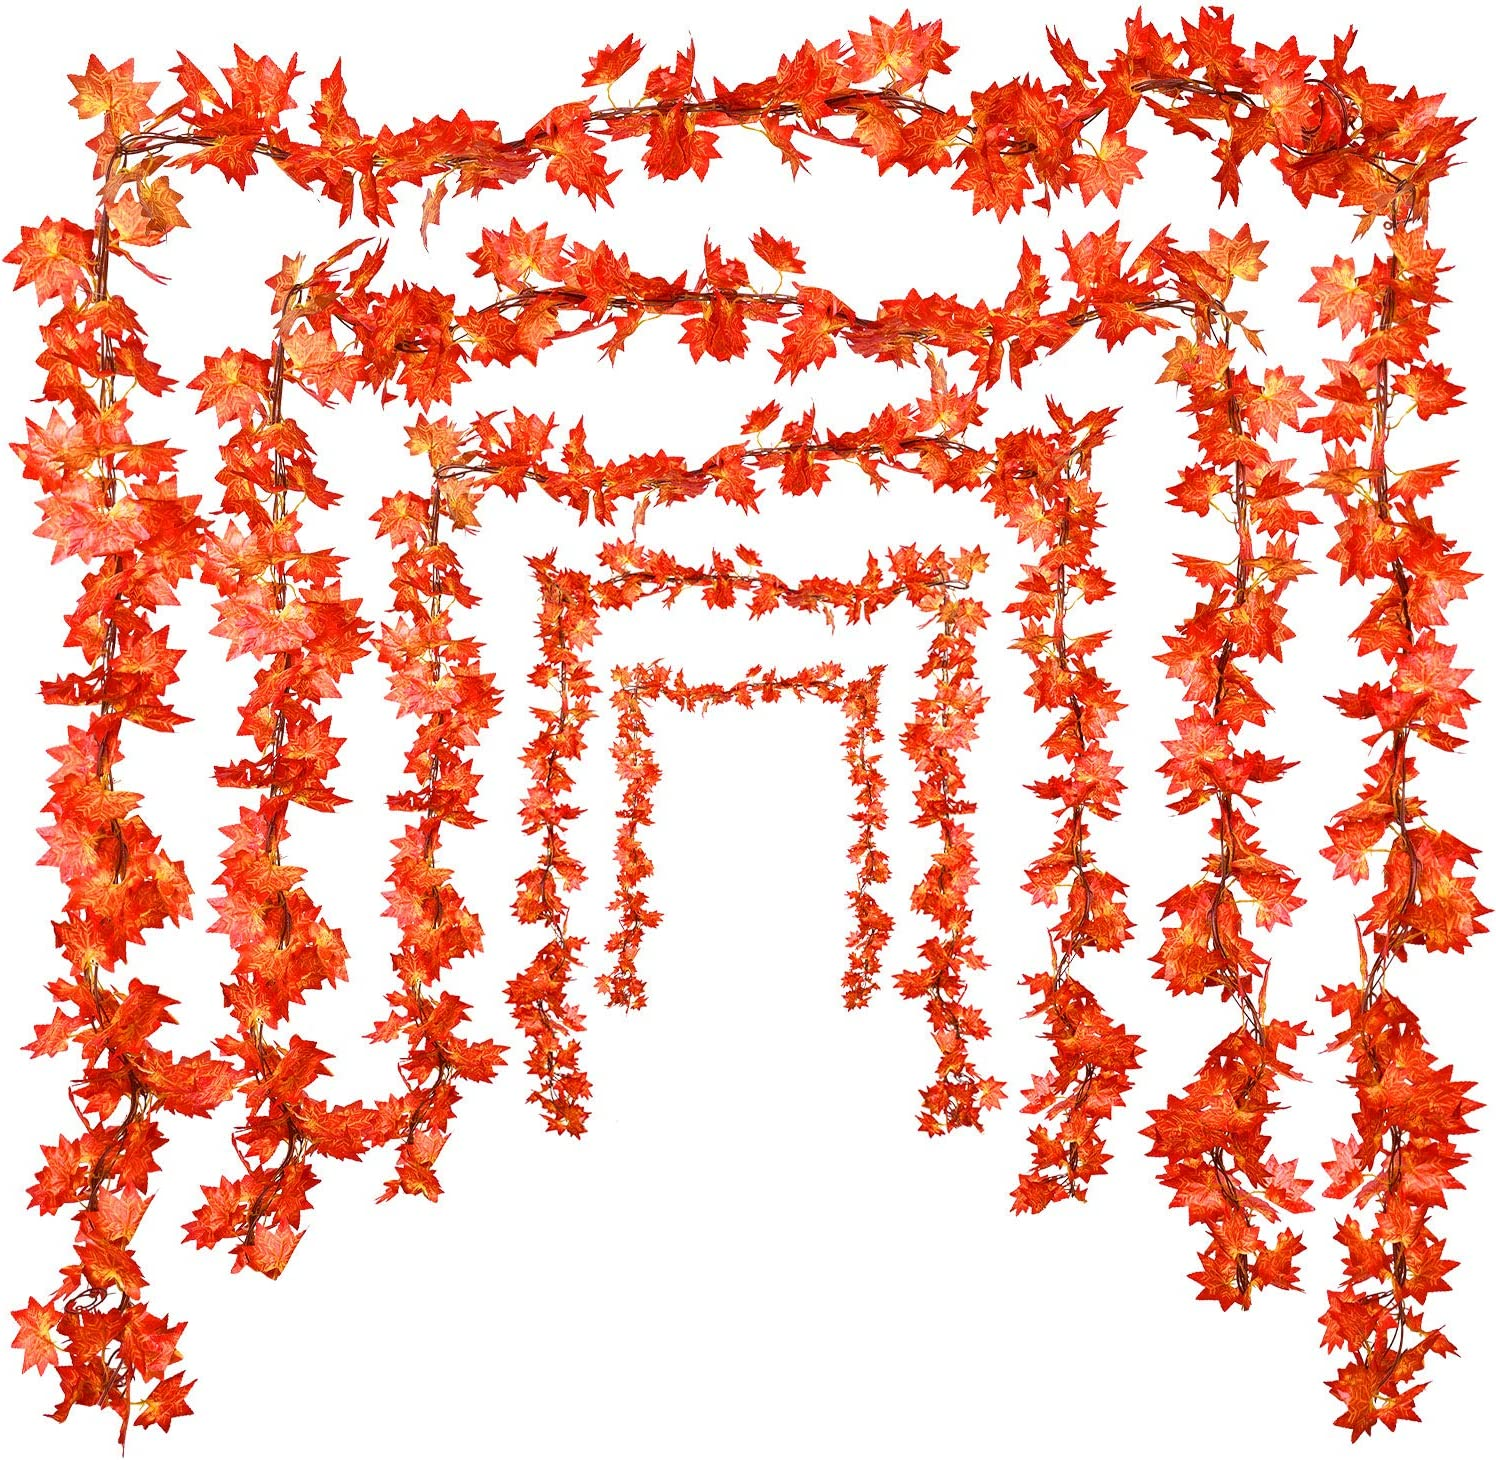 WILLBOND 5 Pieces Artificial Autumn Maple Leaf Garland Hanging Plant Decoration for Home Garden Doorway Fireplace Thanksgiving Wedding Party Decoration